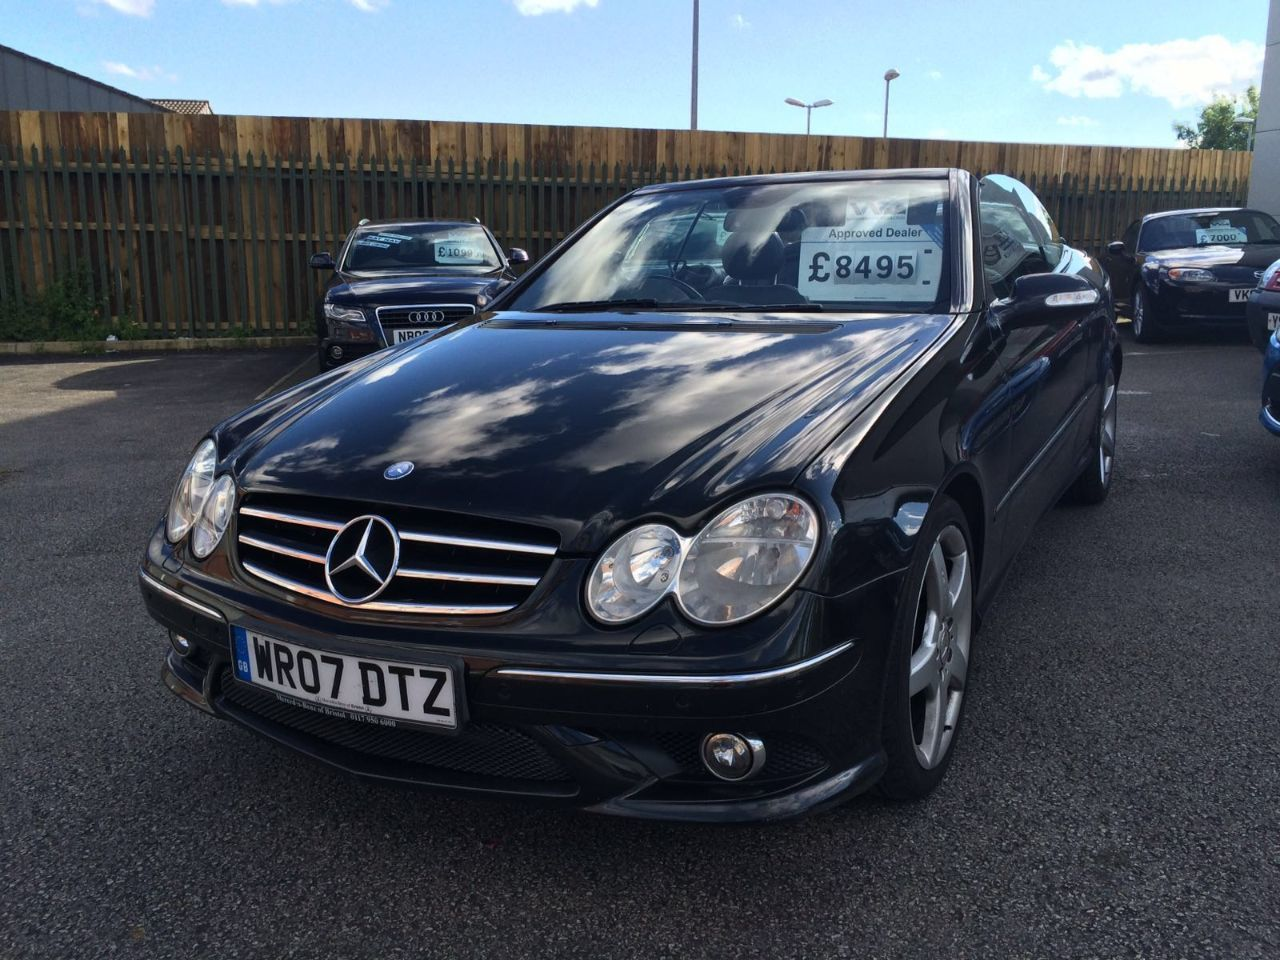 Mercedes-Benz CLK 3.7 350 Sport Convertible Petrol Black